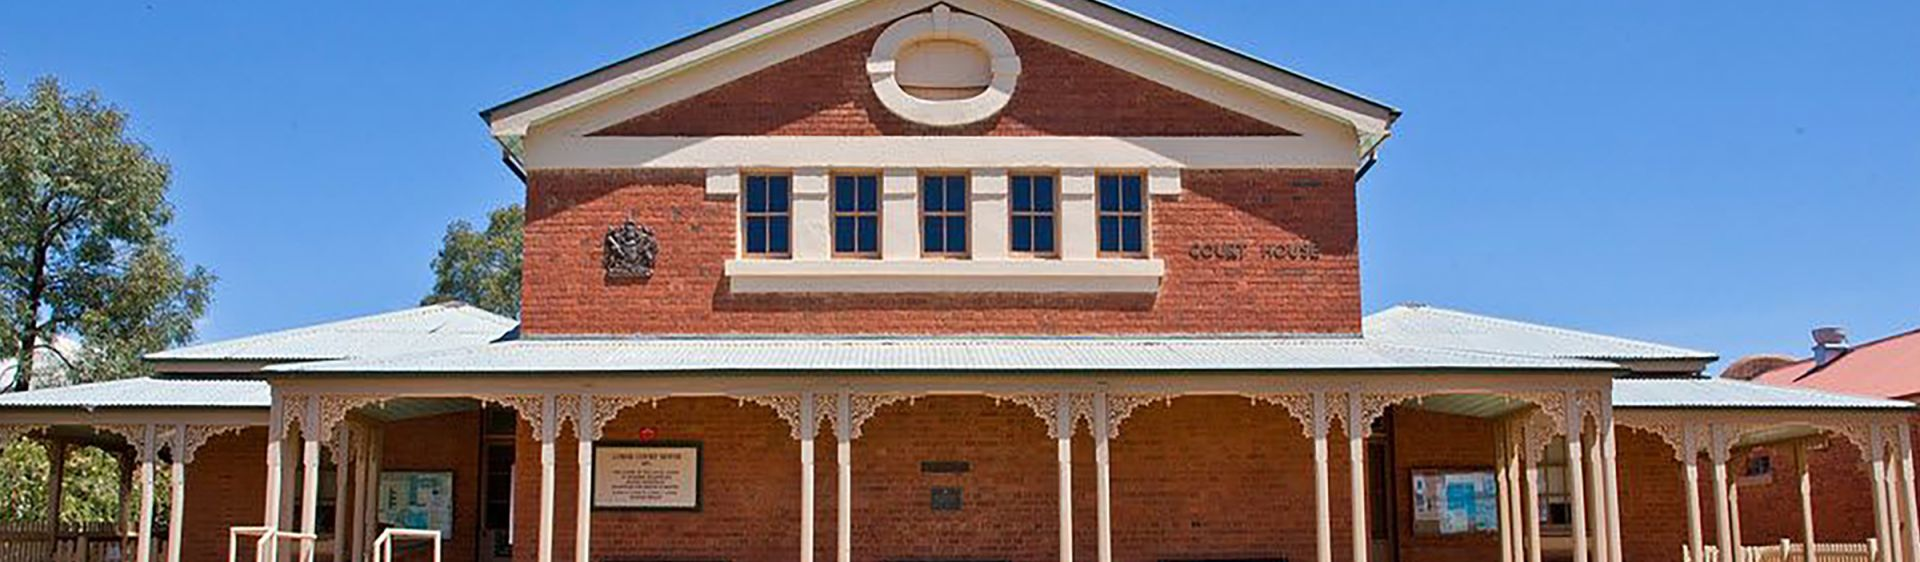 Cobar Heritage Walk - Outback NSW